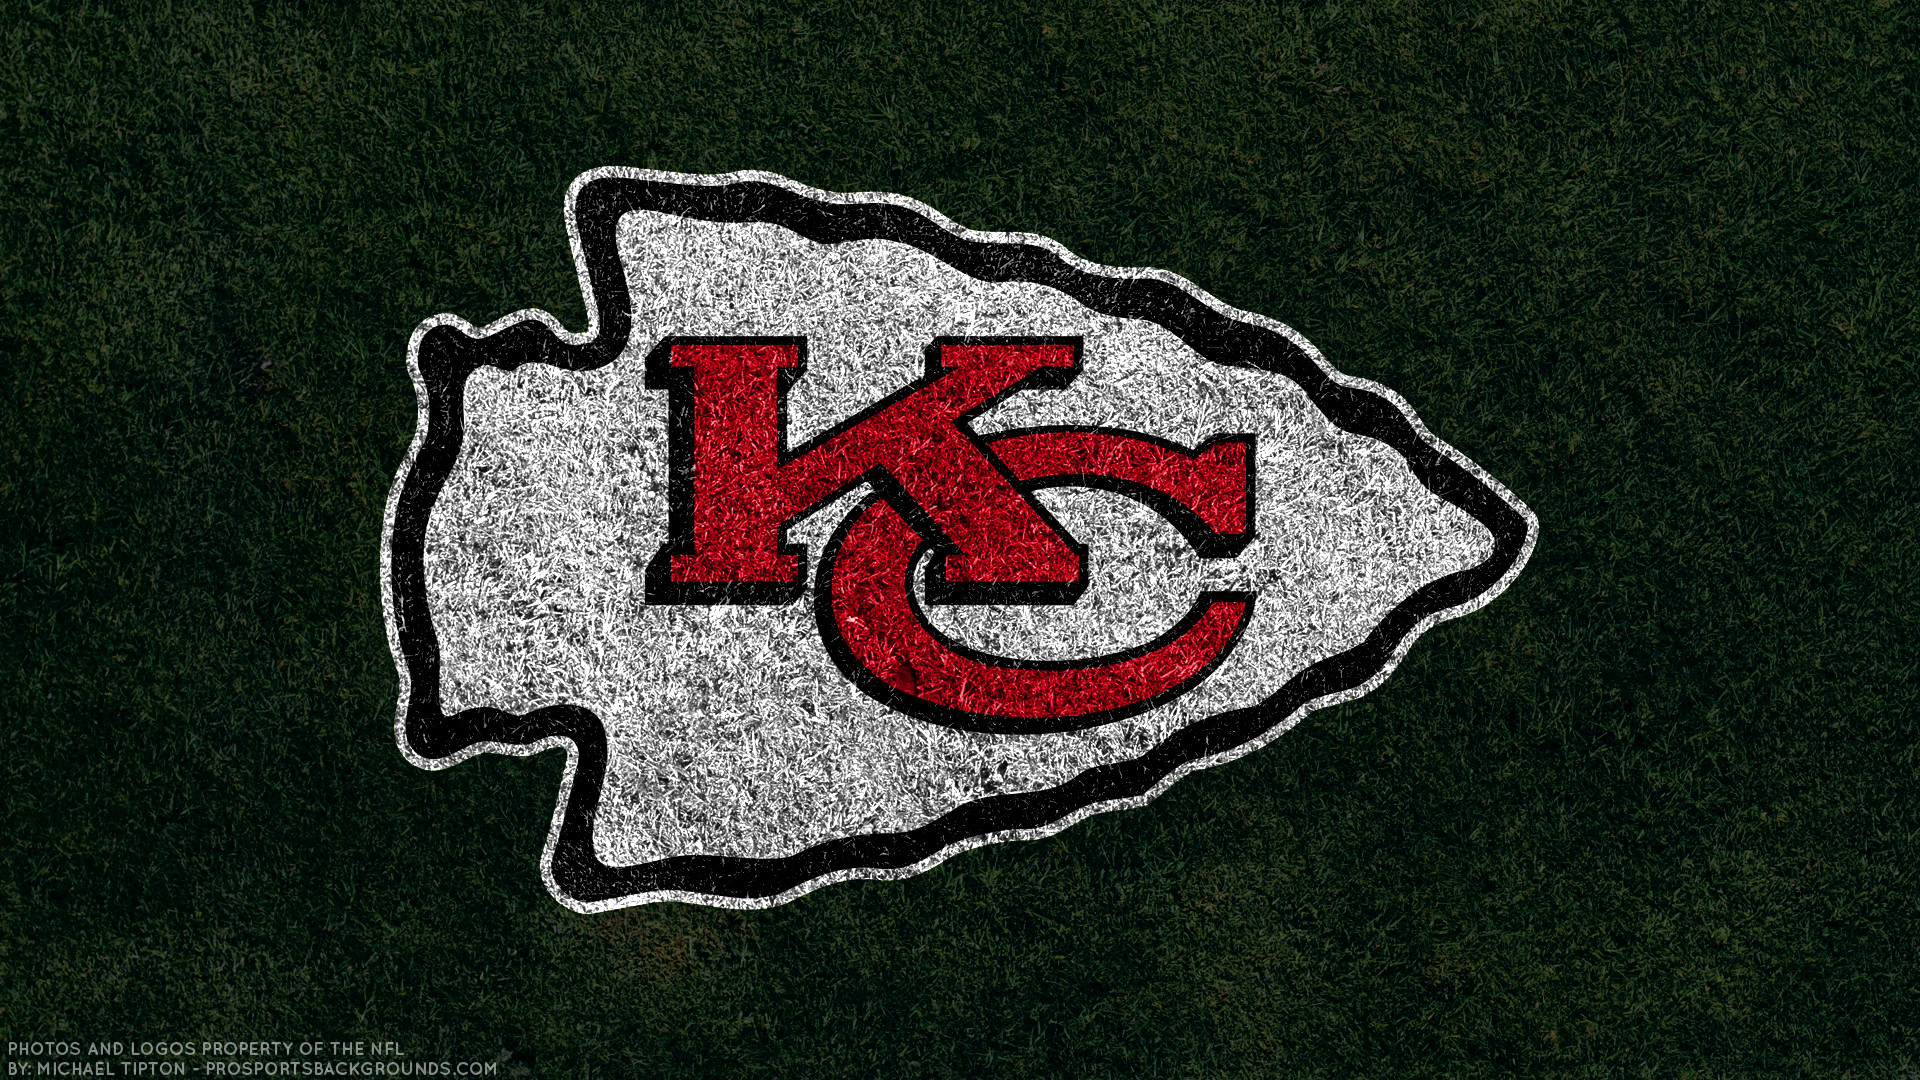 Kansas City Chiefs 2017 Turf Football Logo Wallpaper Free Pc Desktop Computer